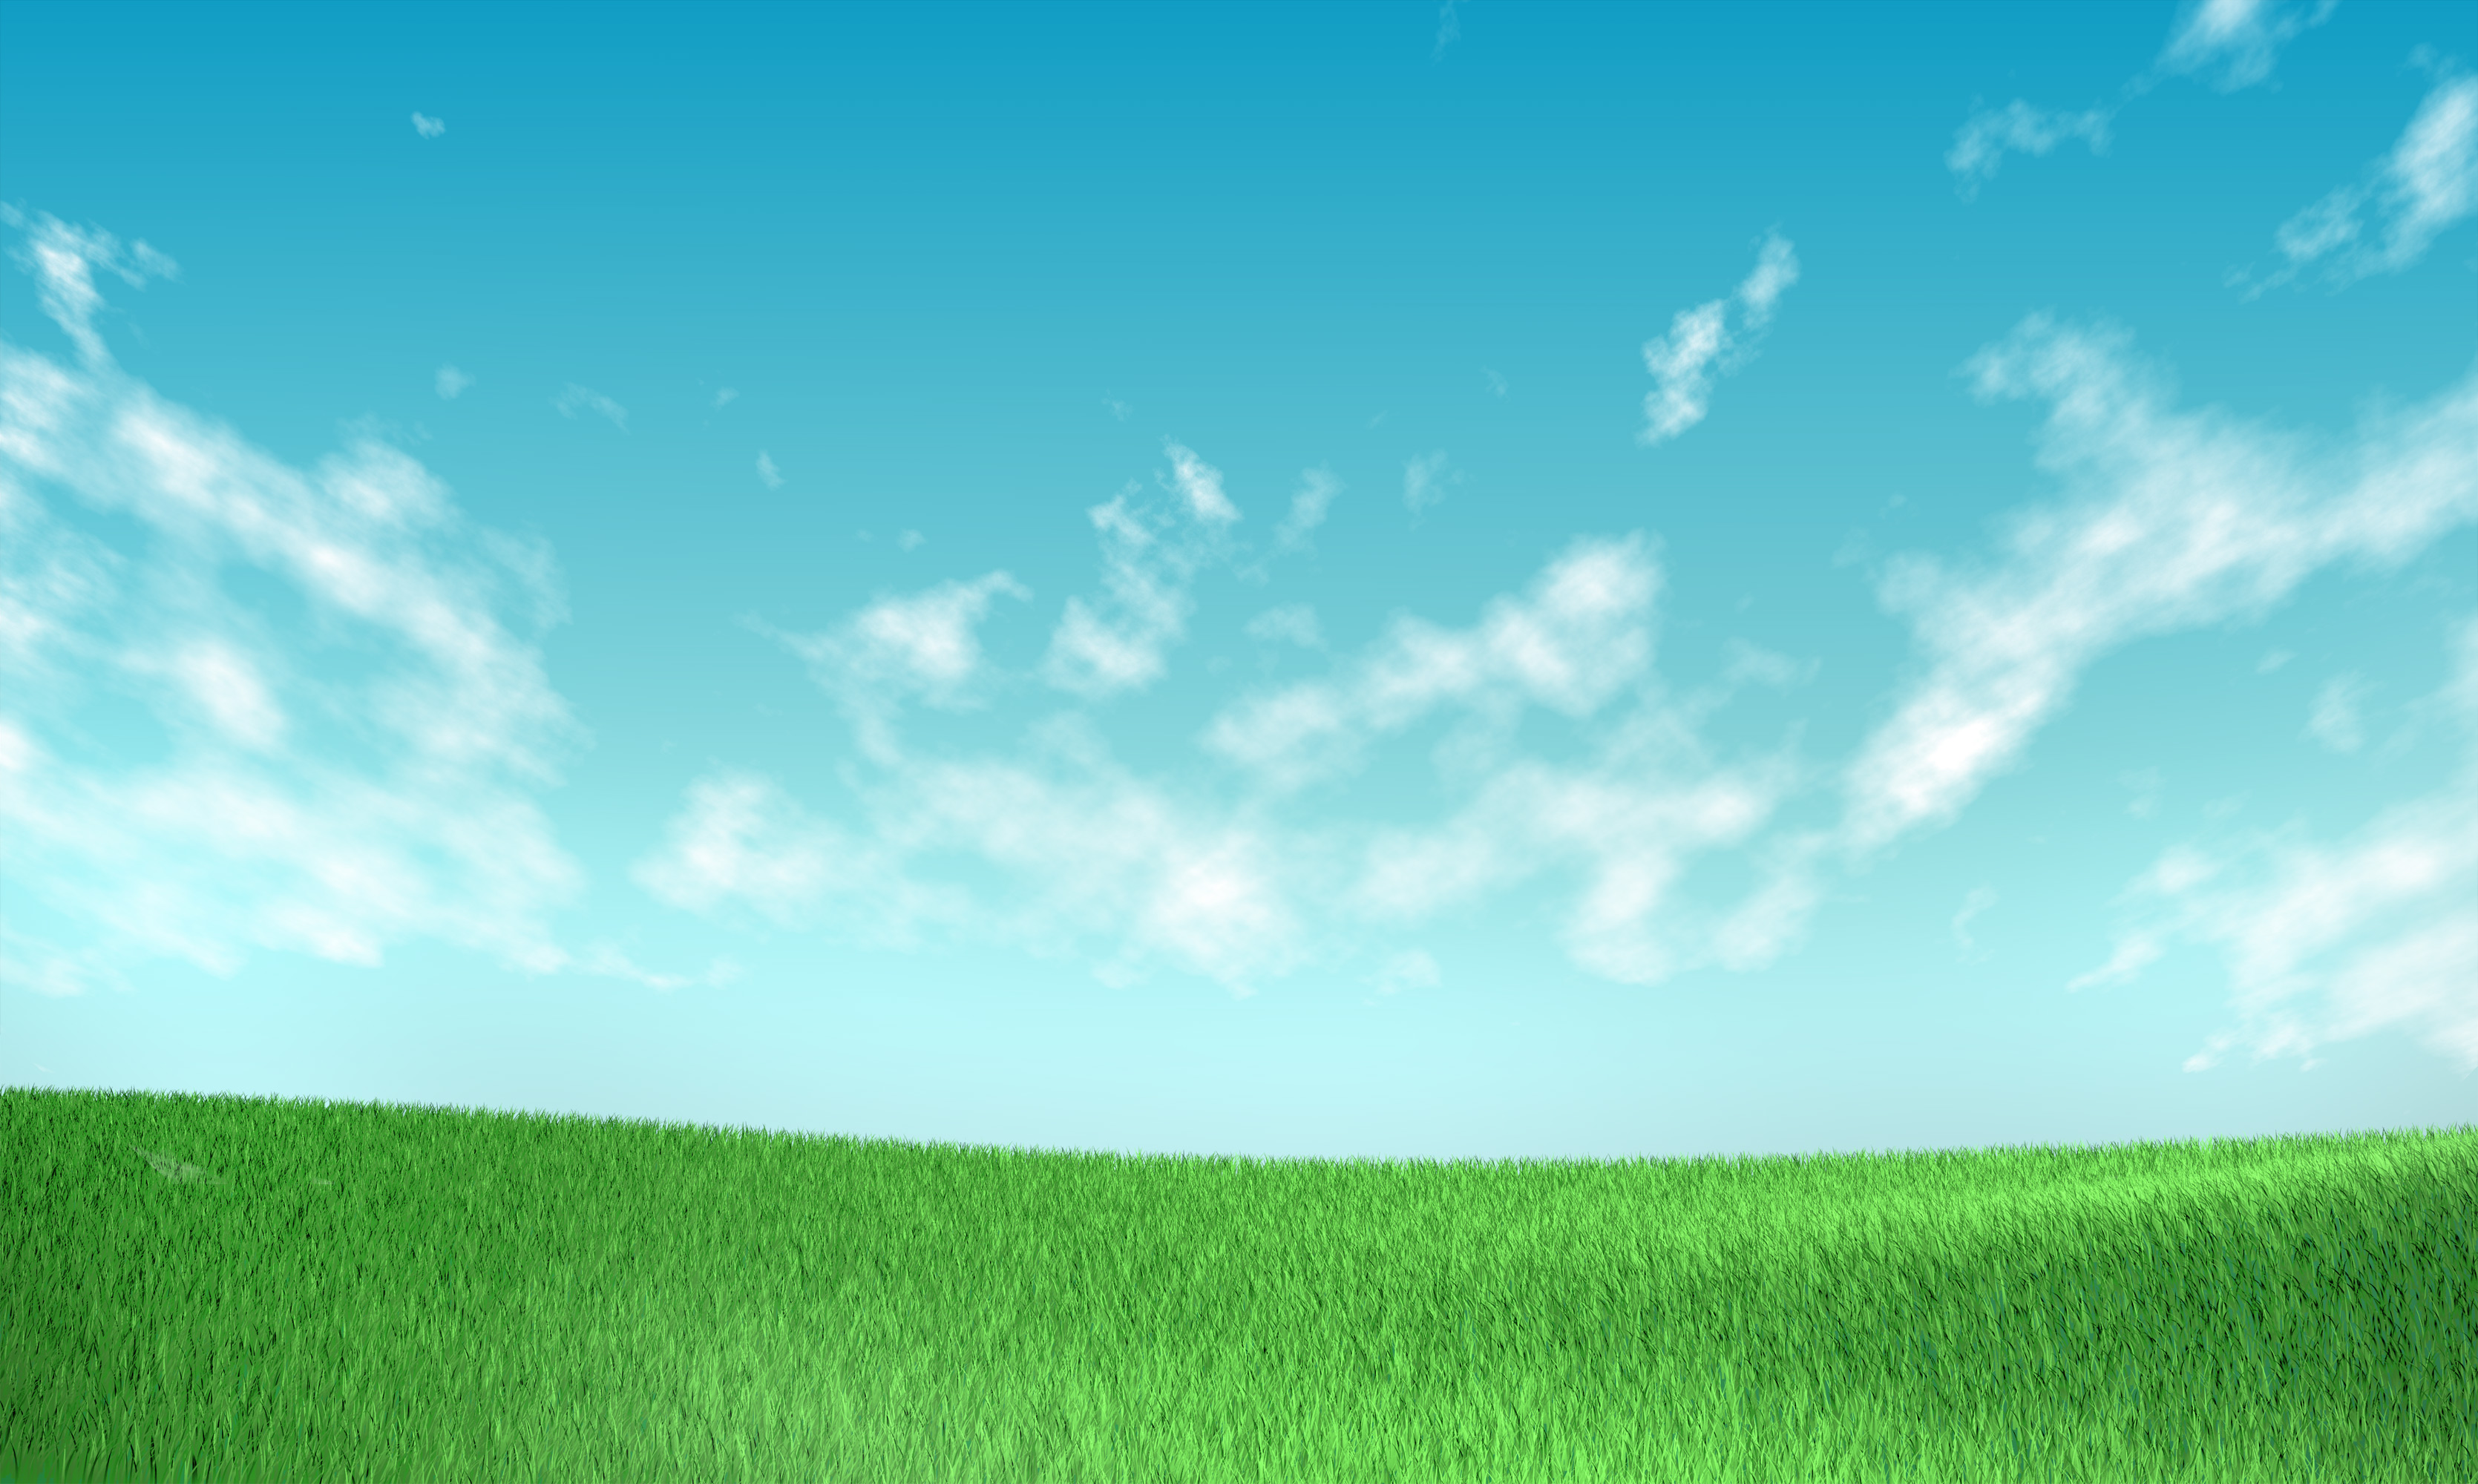 Sky and grass background clipart 4 » Clipart Station.